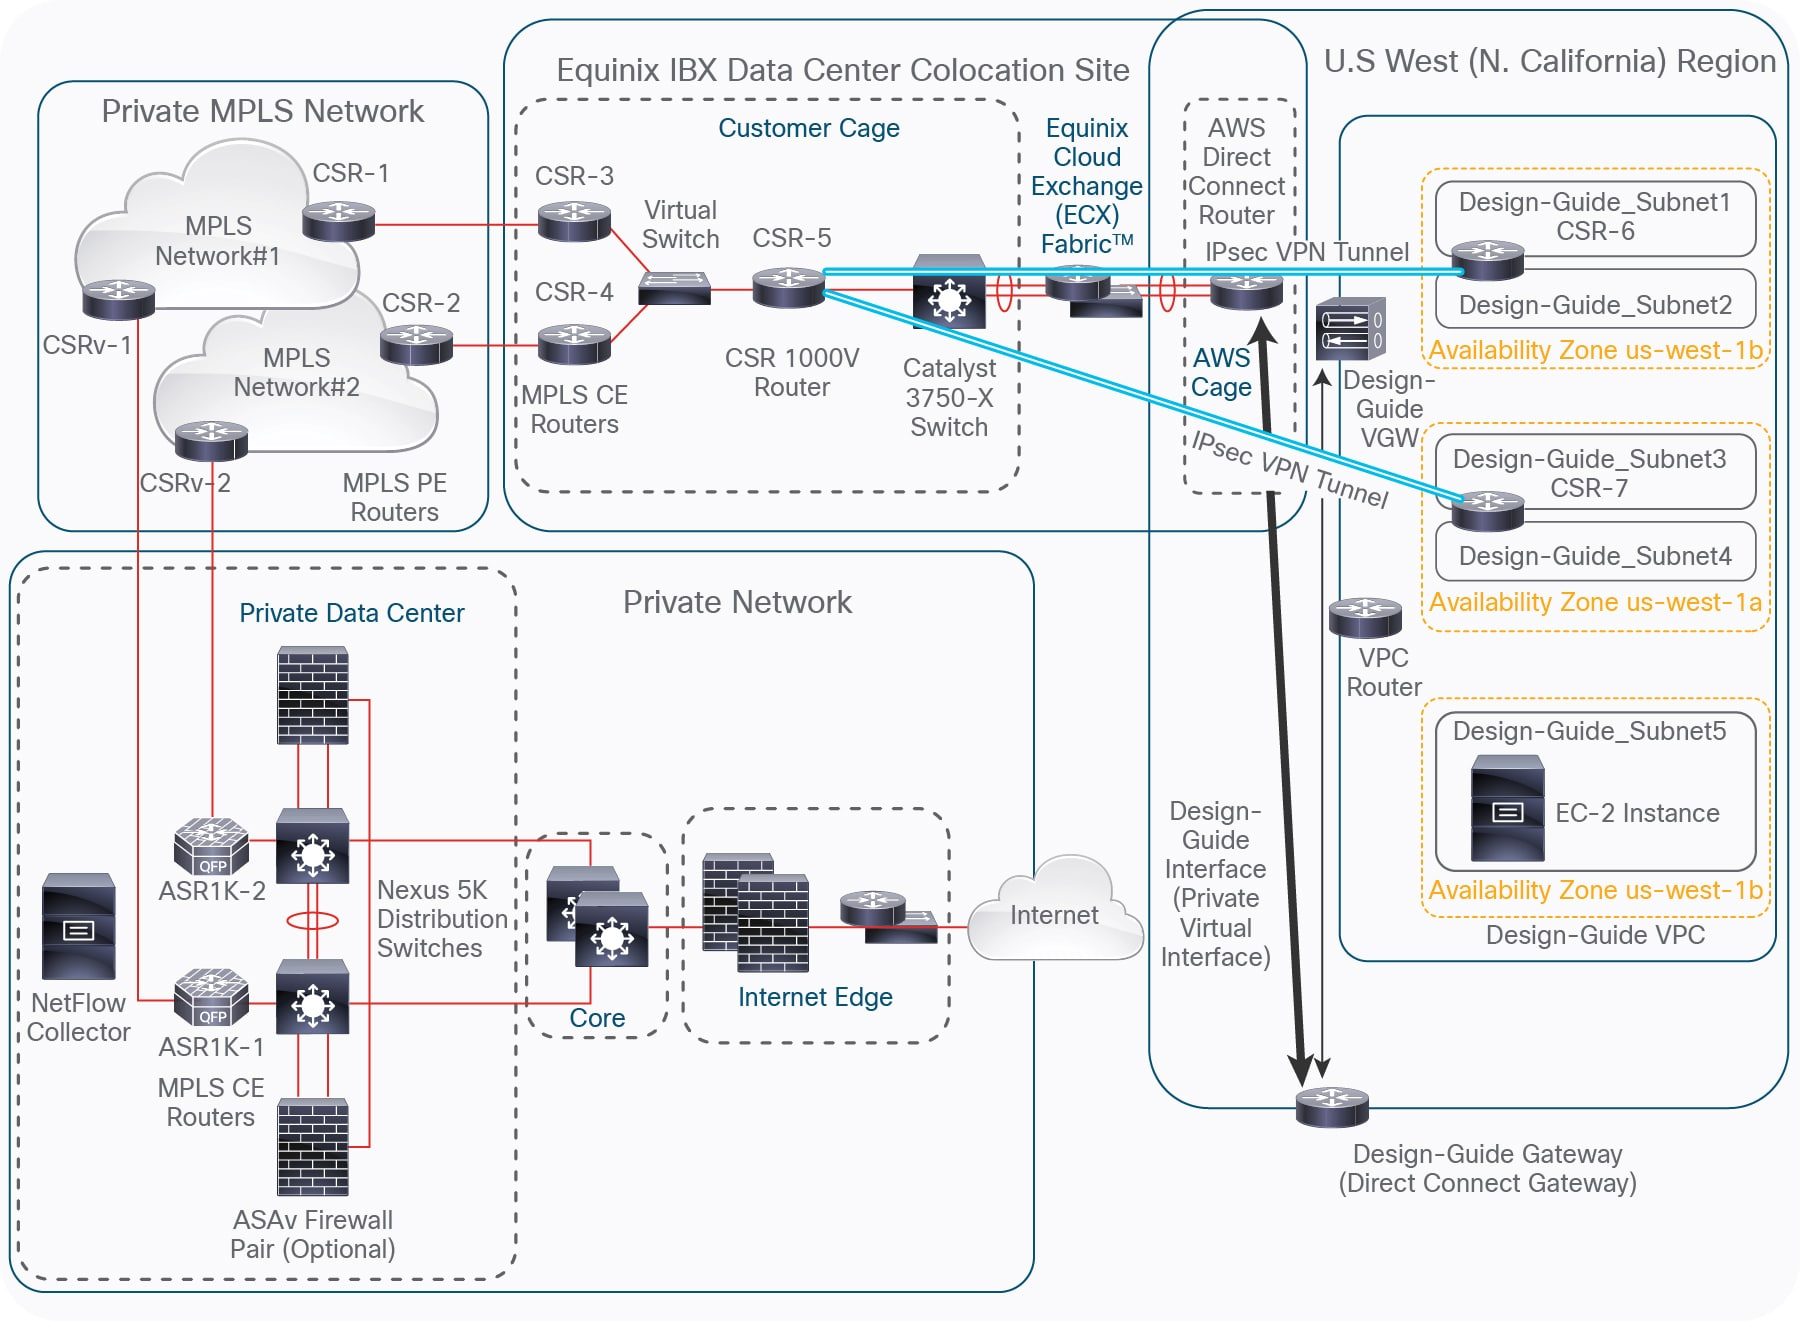 Cisco Multicloud Portfolio: Deployment Guide for Private